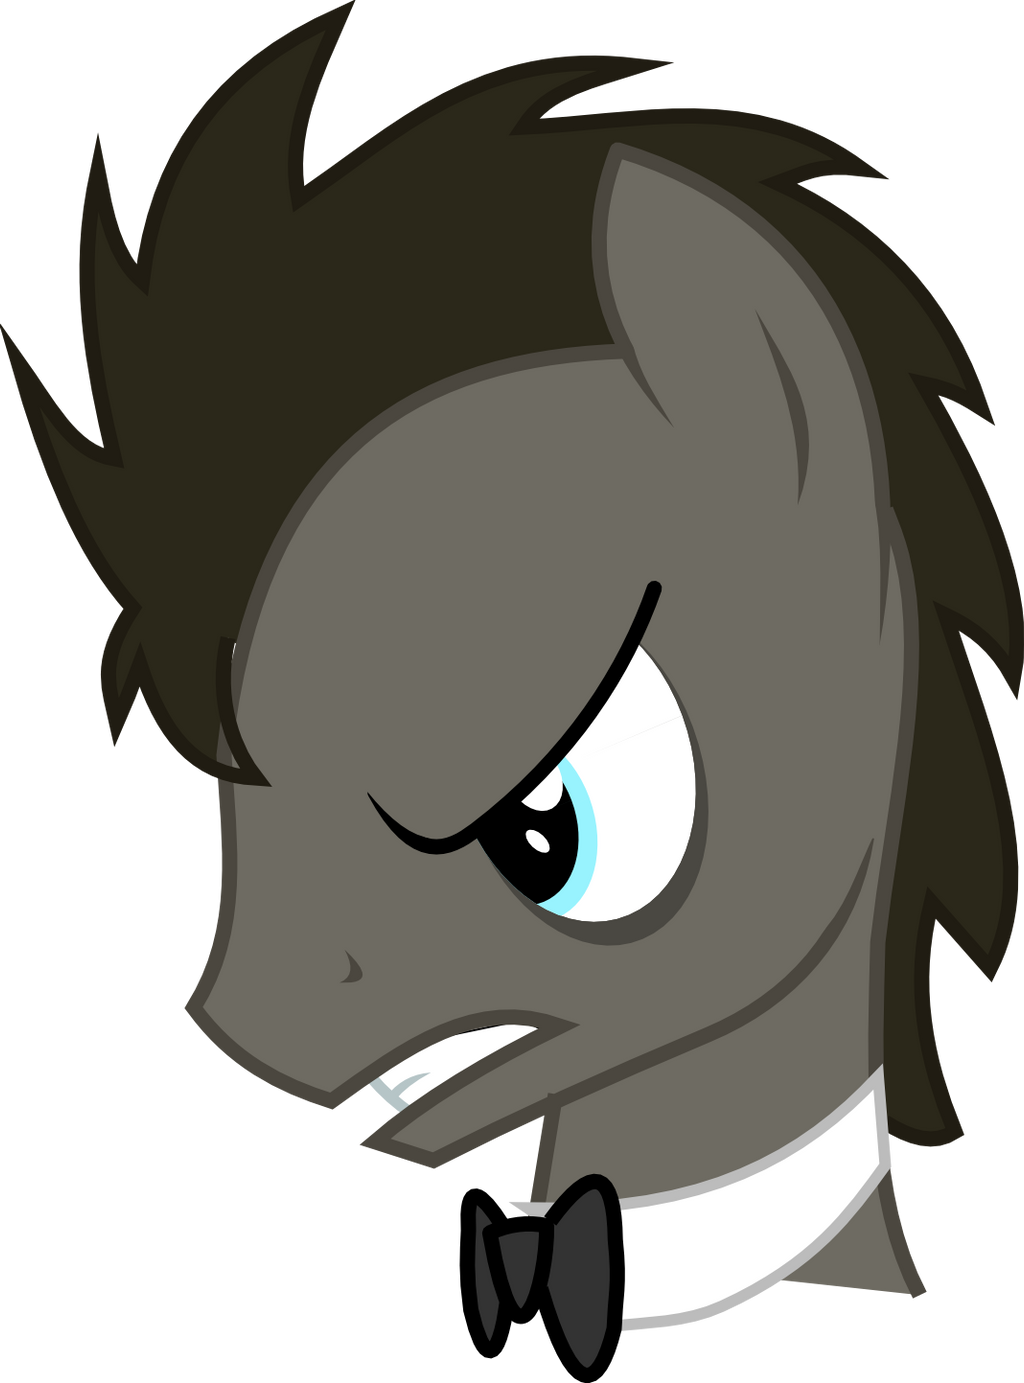 Discord Whooves(grr) by Peora on DeviantArt